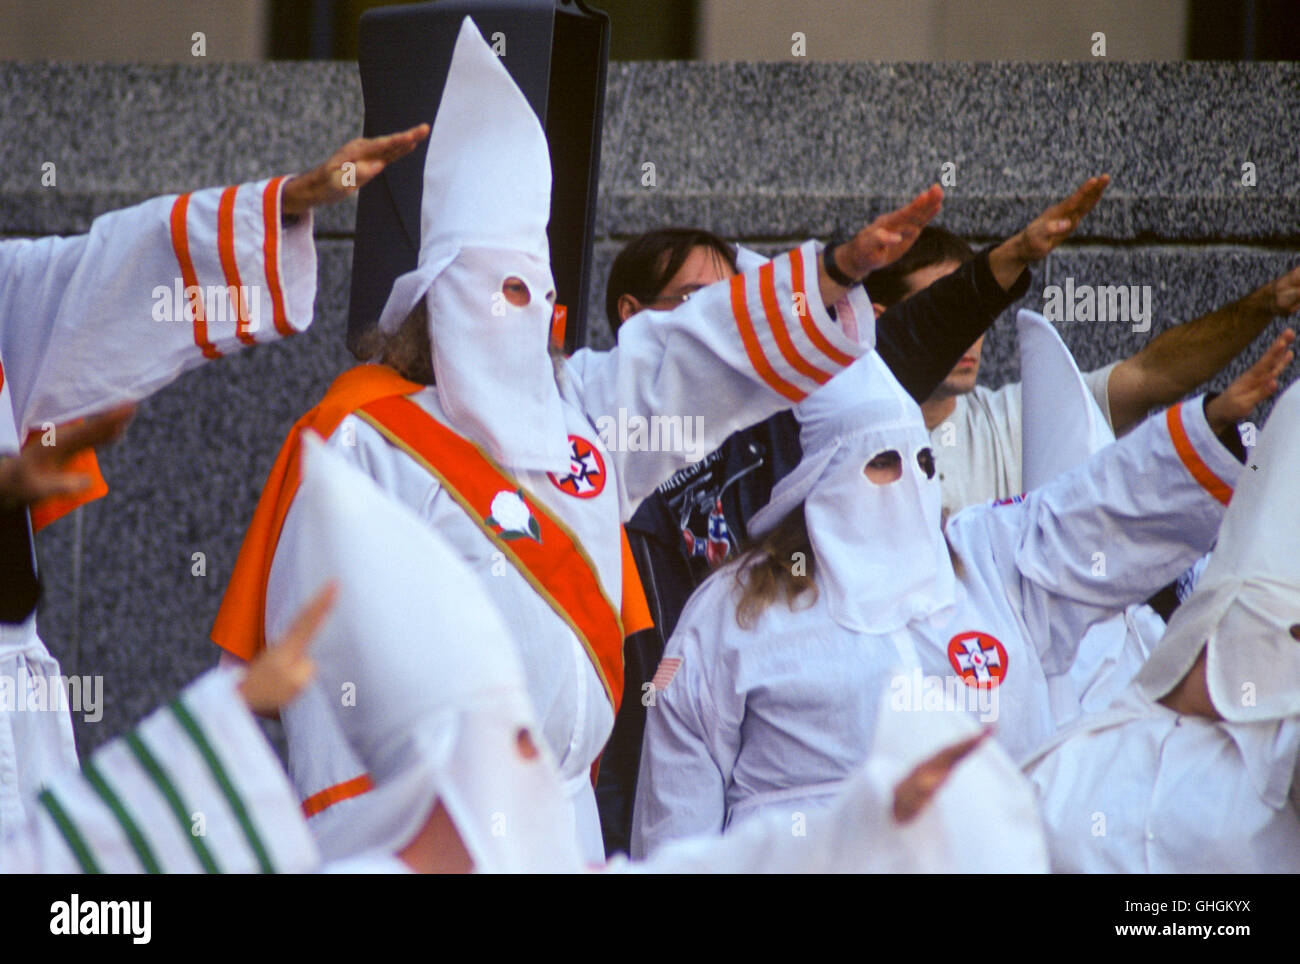 http://c7.alamy.com/comp/GHGKYX/klan-members-give-the-nazi-salute-at-a-ku-klux-klan-rally-in-birmingham-GHGKYX.jpg